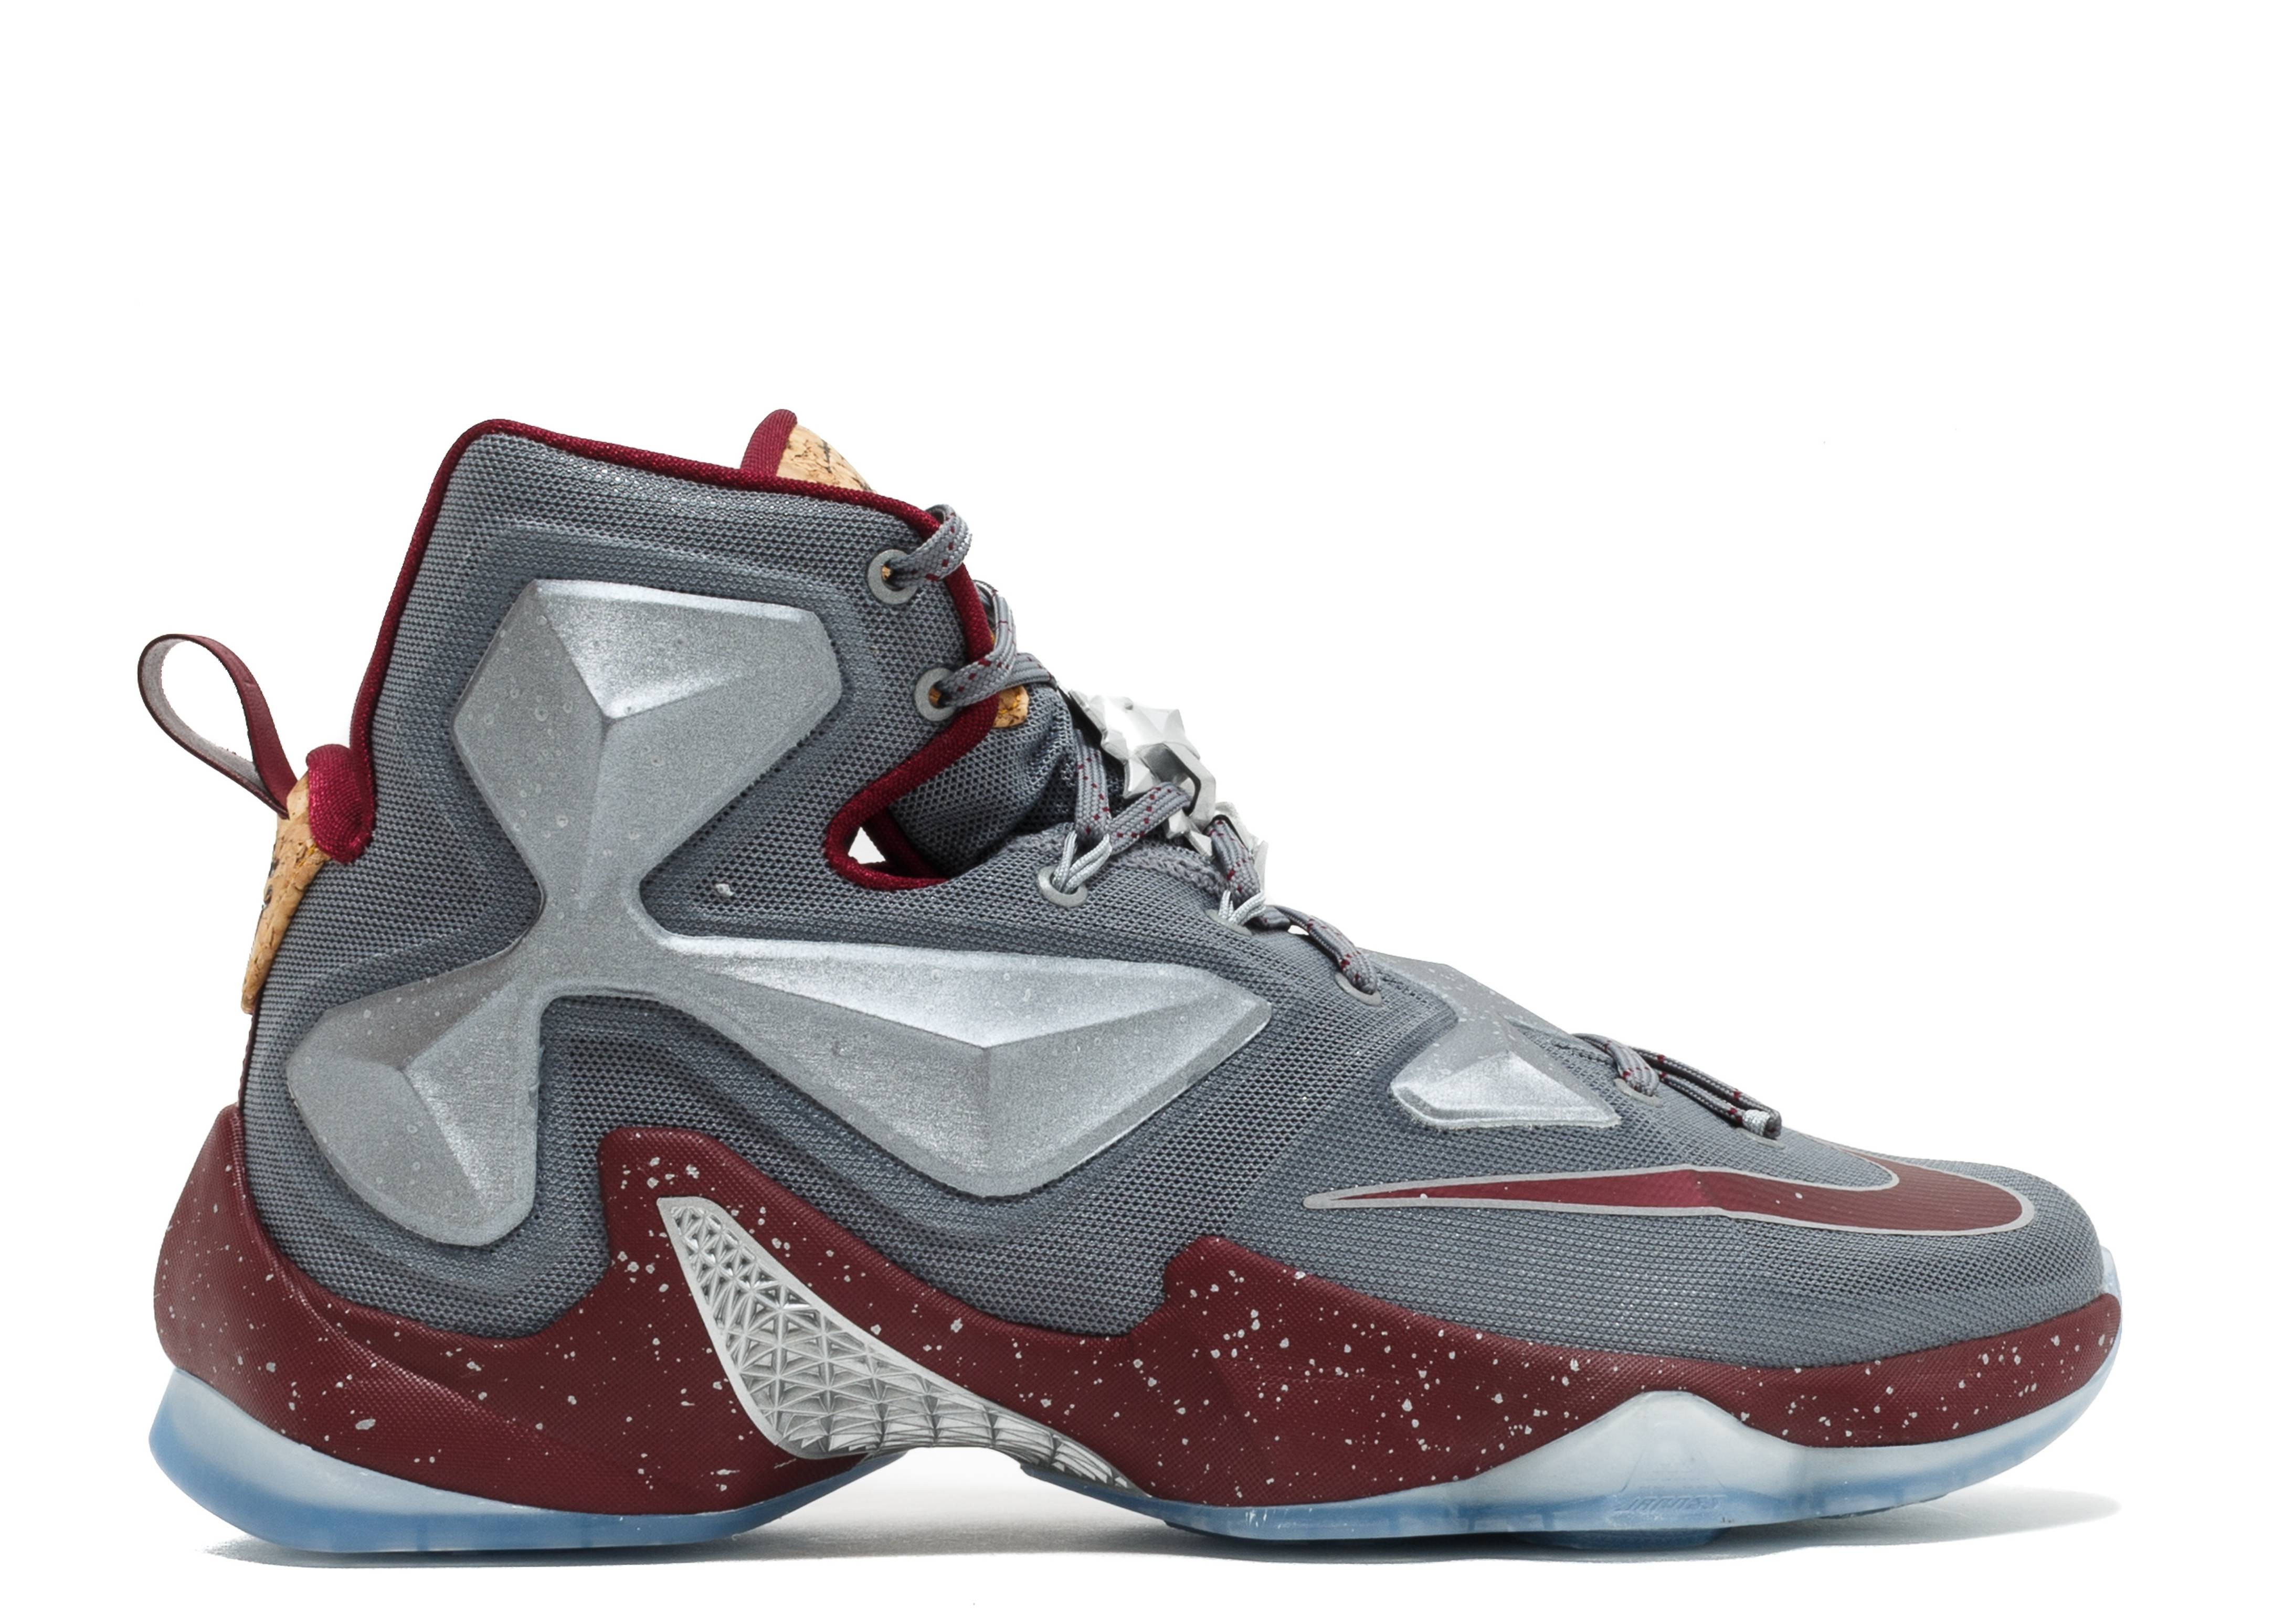 Jordan Esterno Wine N Grind Black Metallic Gold Red